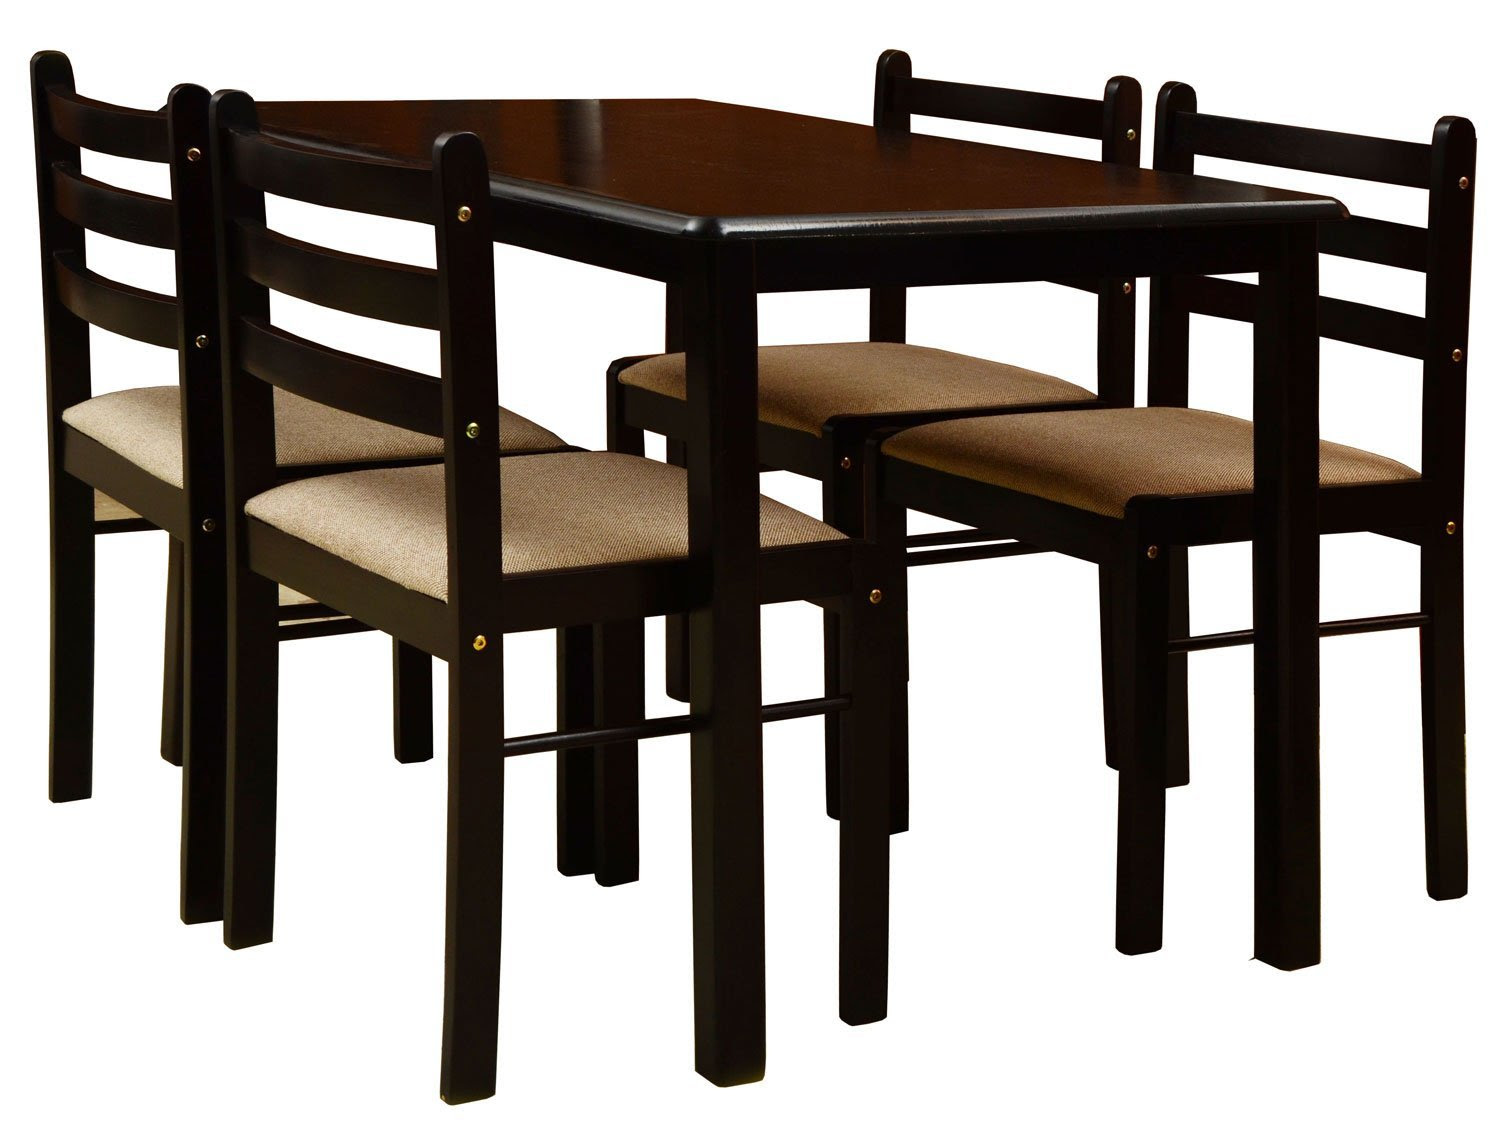 Nitraa Augusta Four Seater Dining Table \/ Contemporary Wooden Dining Set \/ 4 Seater Dining Chair